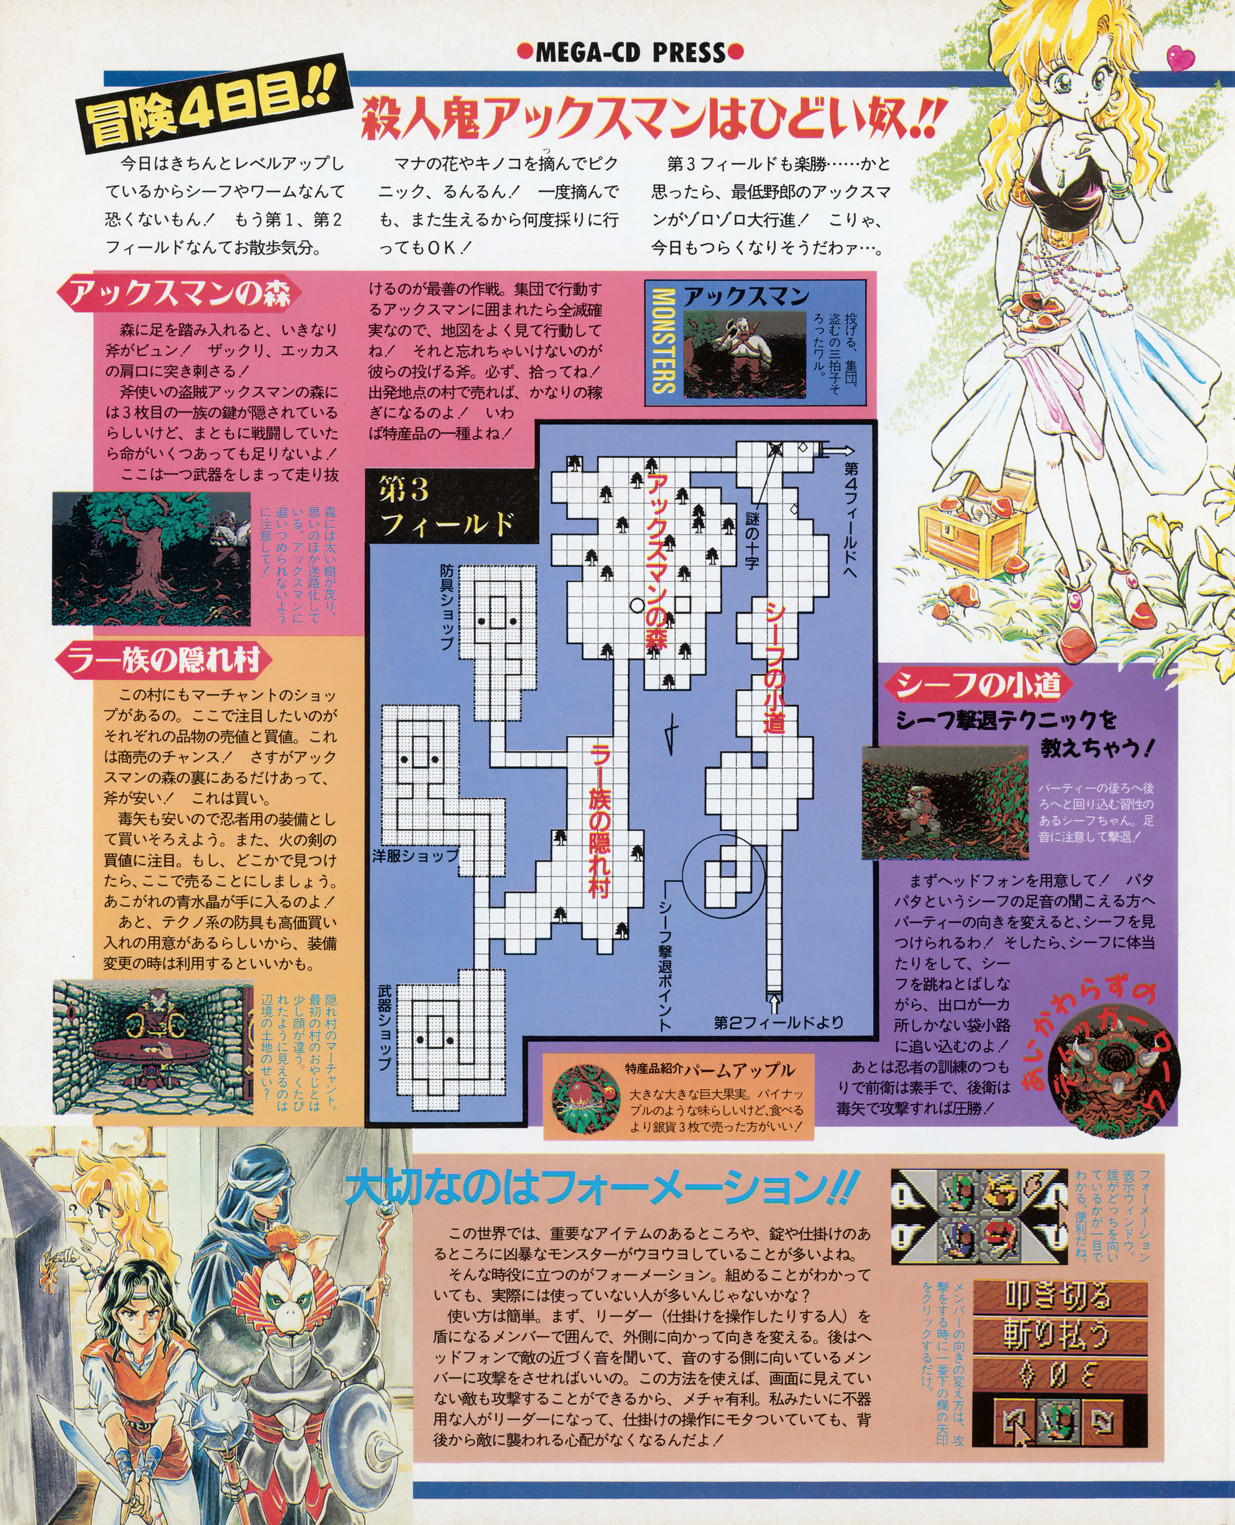 Dungeon Master II for Mega CD Hints published in Japanese magazine 'Beep! MegaDrive', May 1994, Page 118